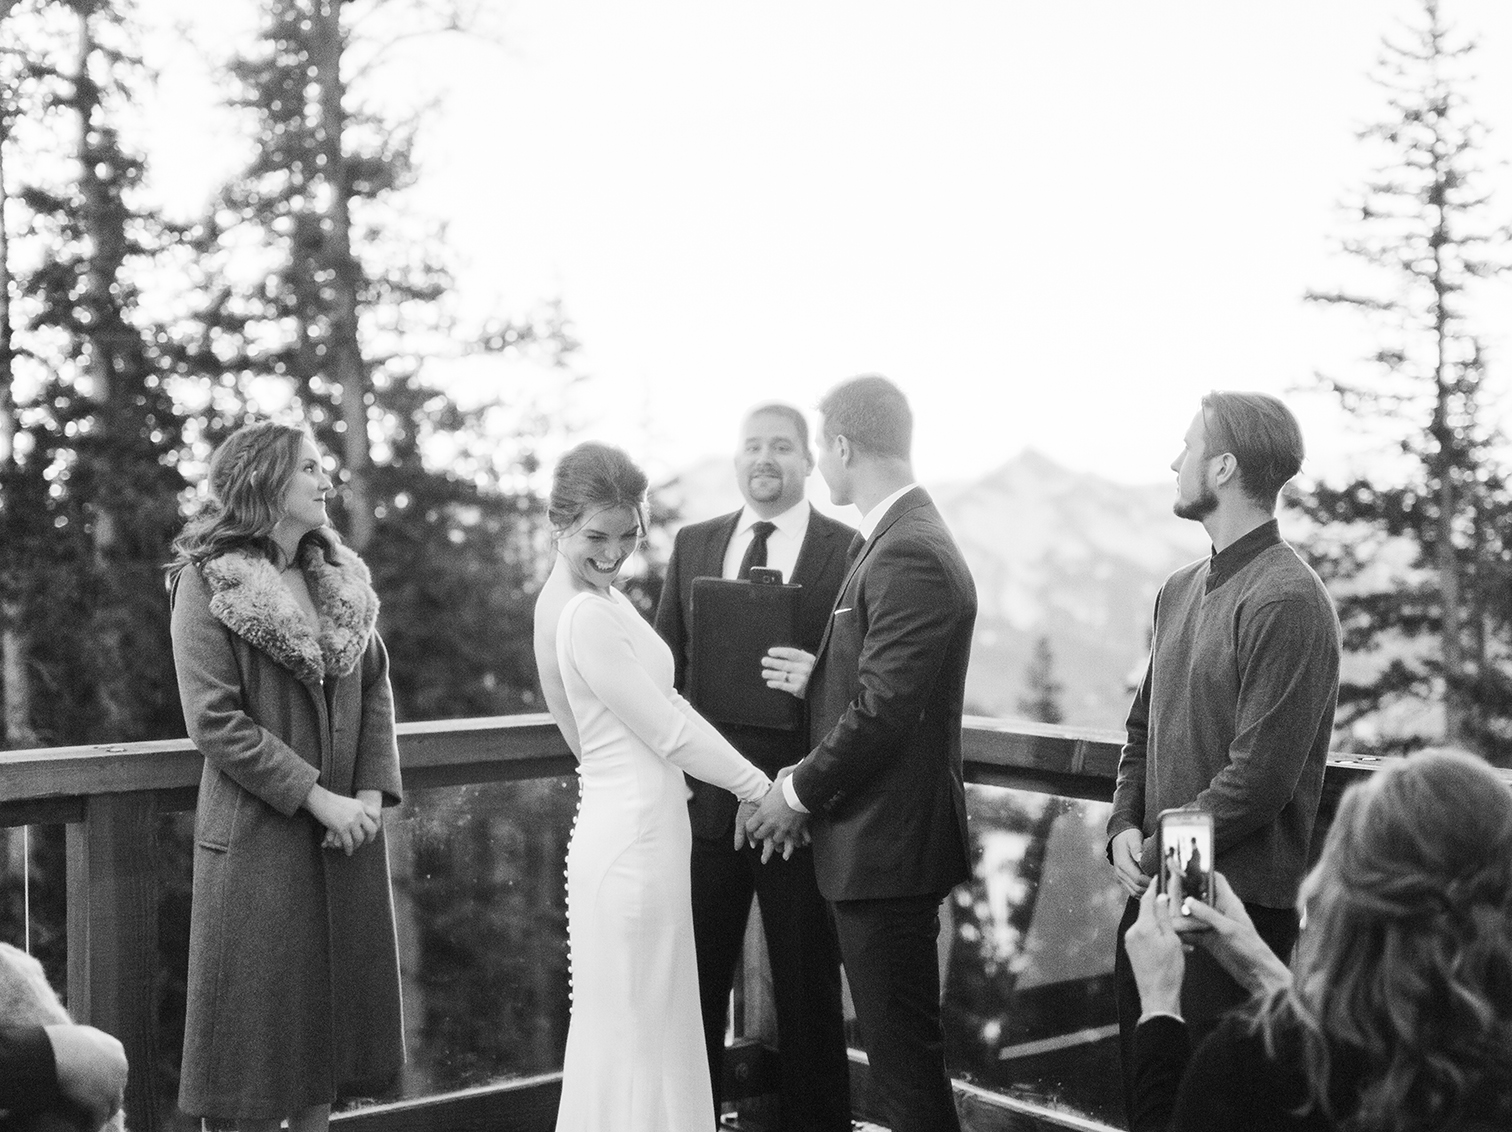 Telluride Wedding, Colorado Destination Wedding, Colorado Photographer, Colorado Wedding Photography, Ceremony